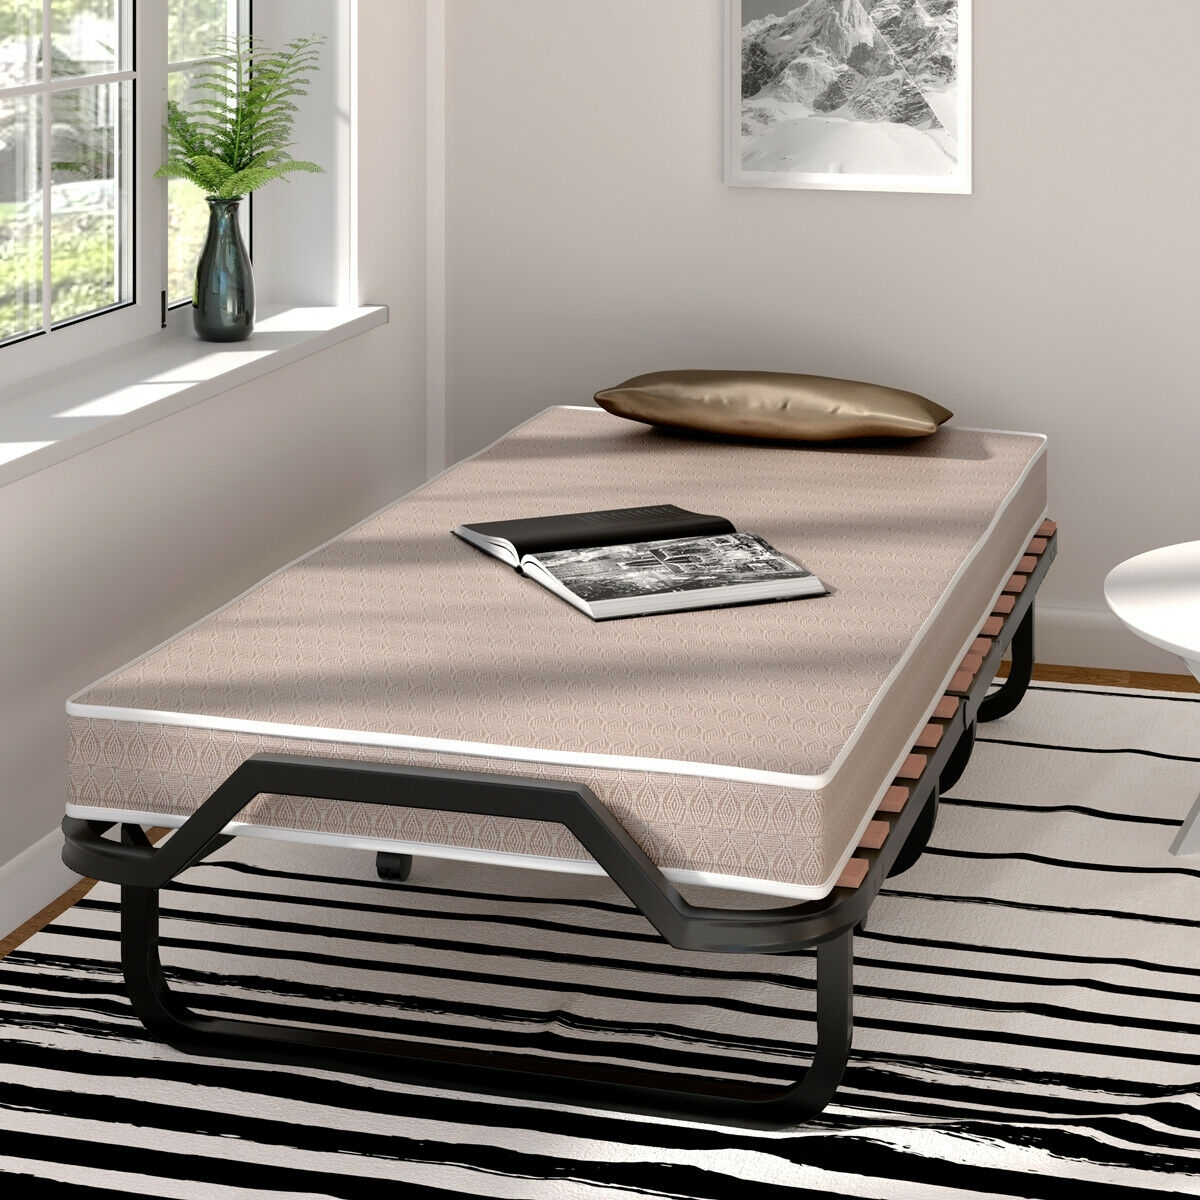 Image of Rollaway Folding Bed with Memory Foam Mattress